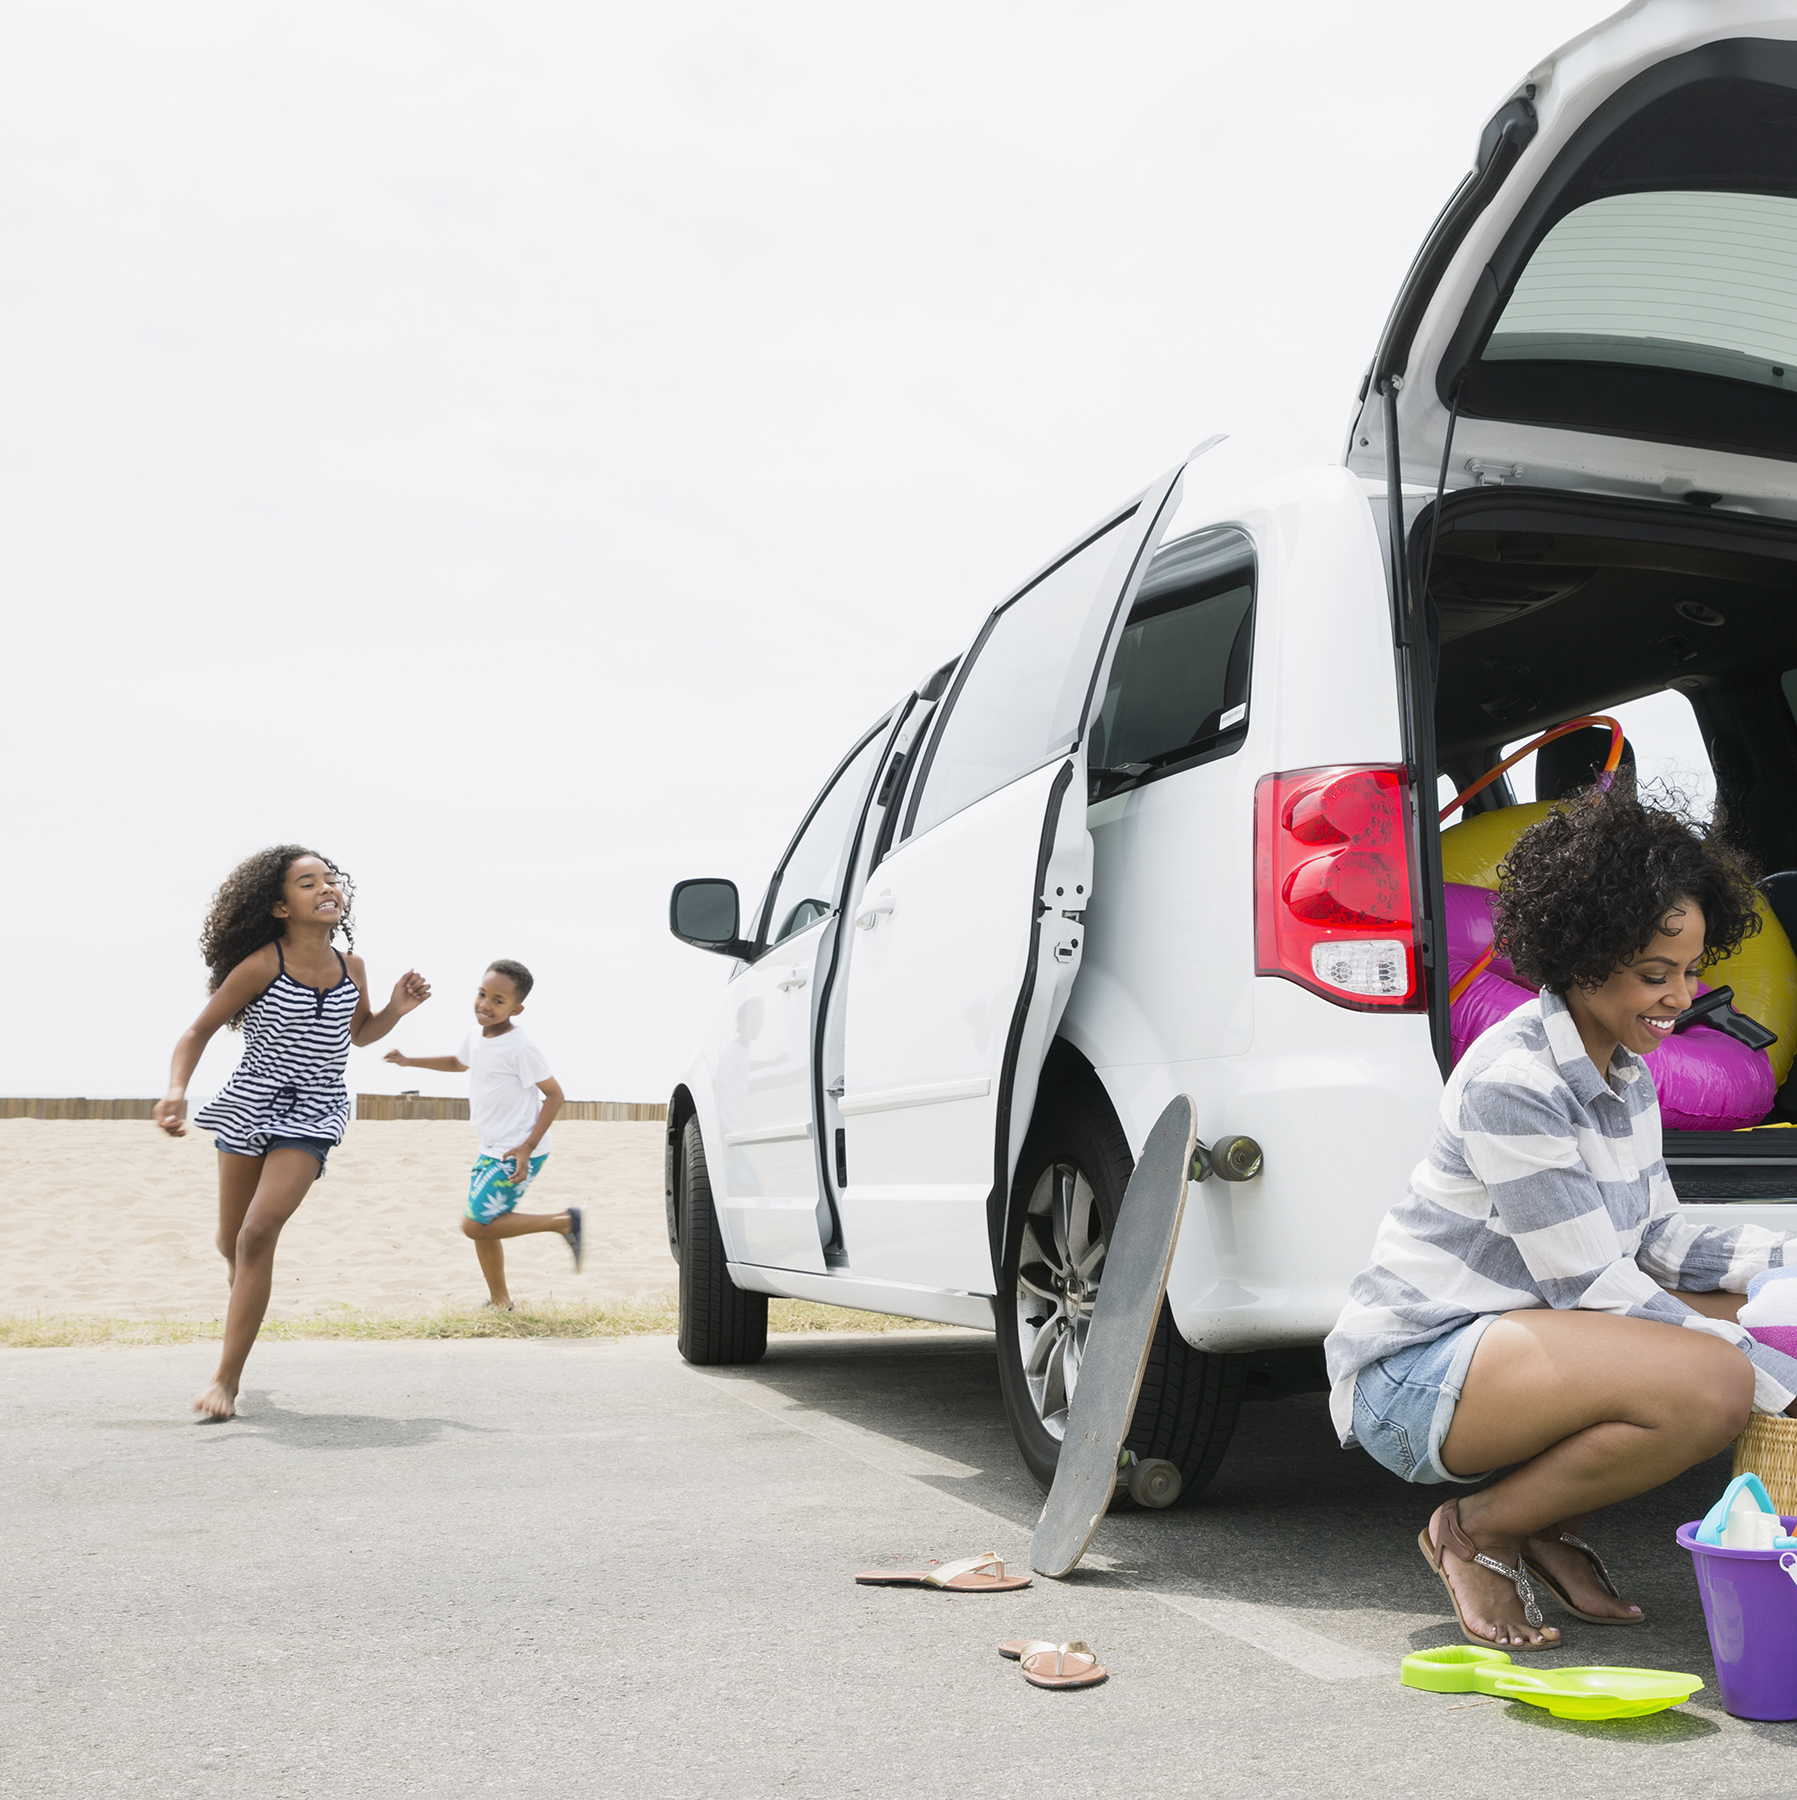 Kids and minivan at beach